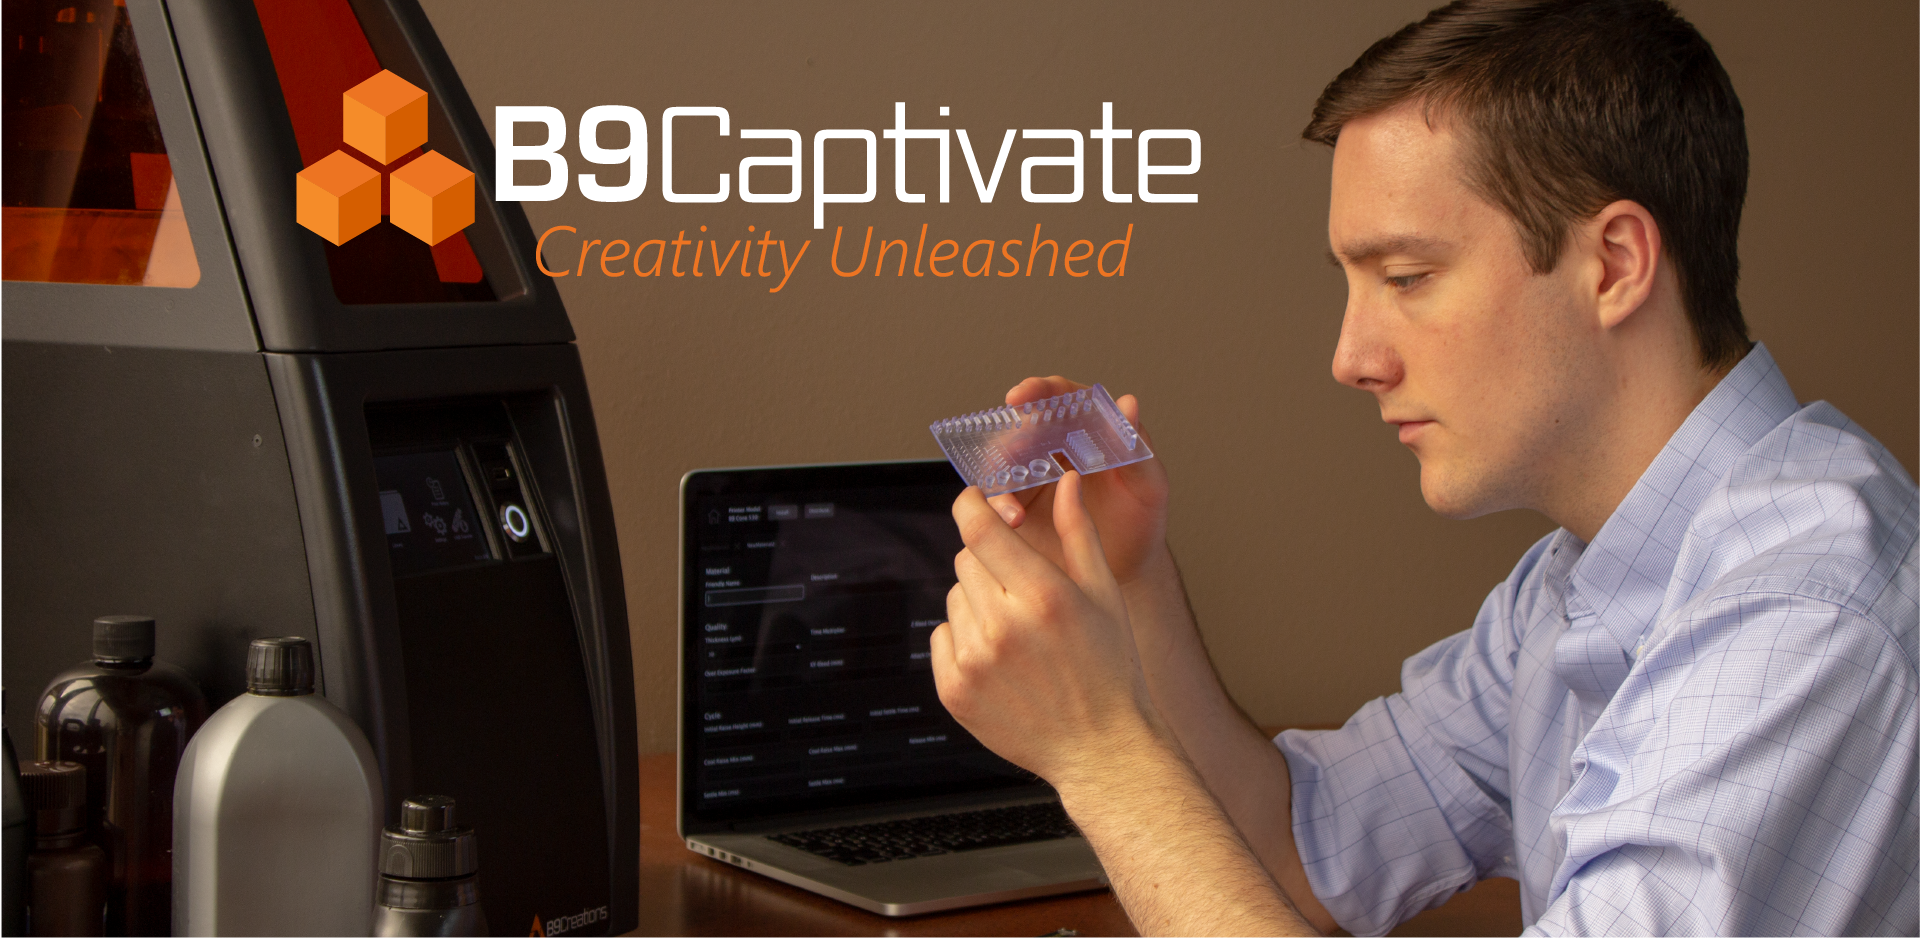 B9Captivate: Creativity Unleashed